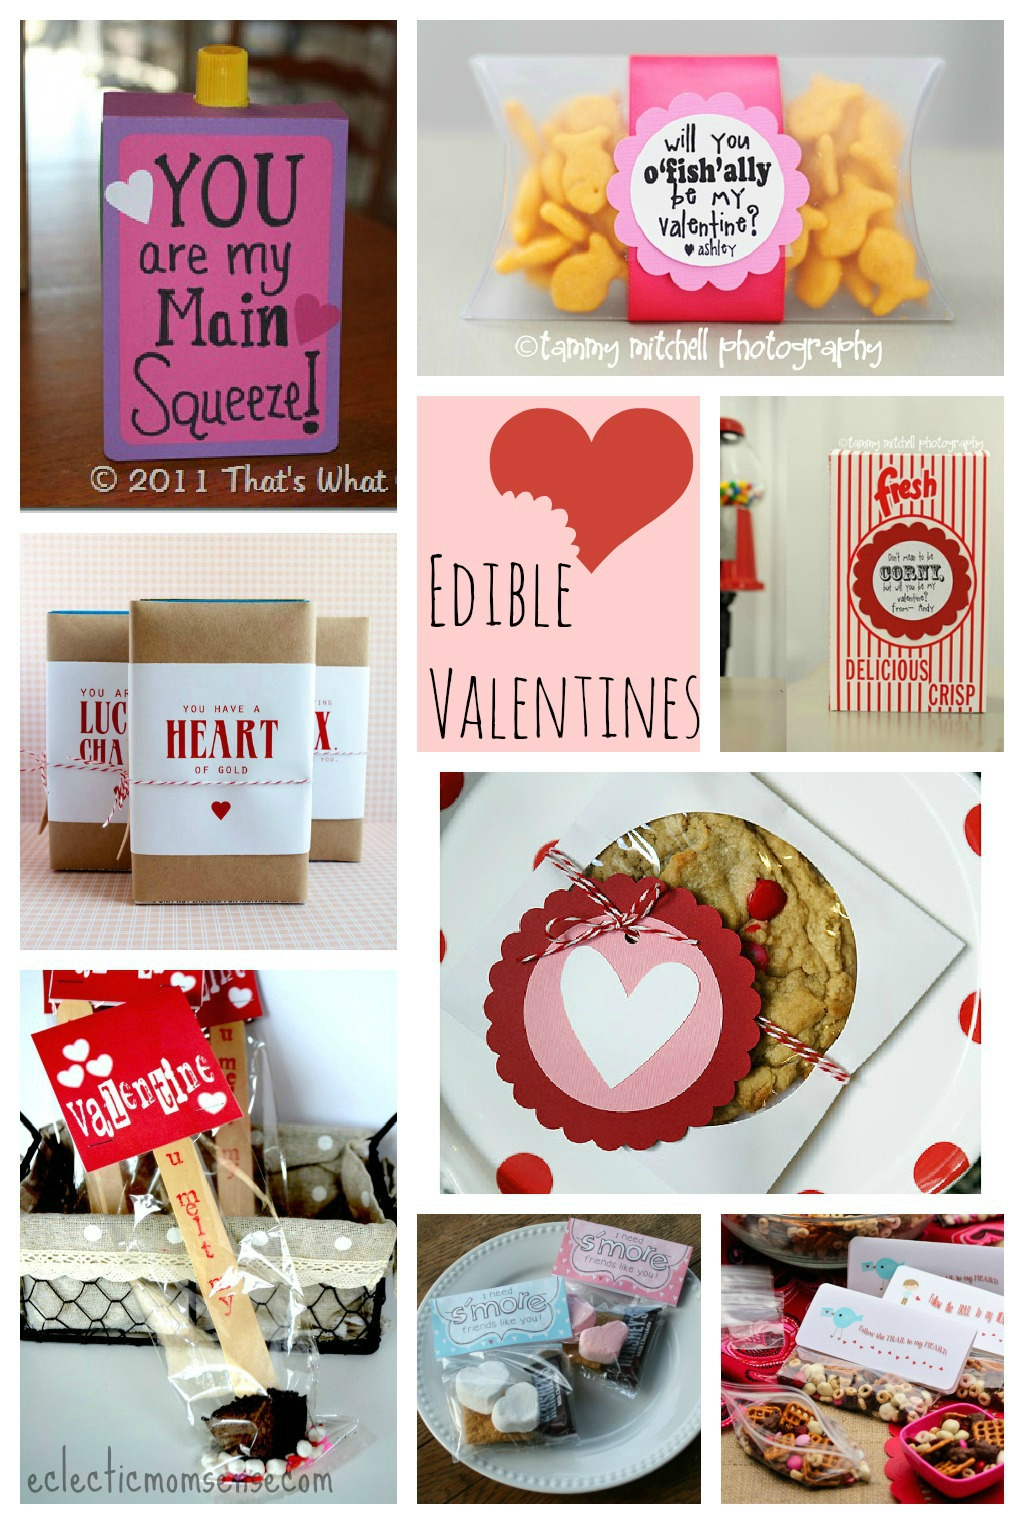 Edible Valentines Ideas via @eclecticmommy - eclecticmomsense.com